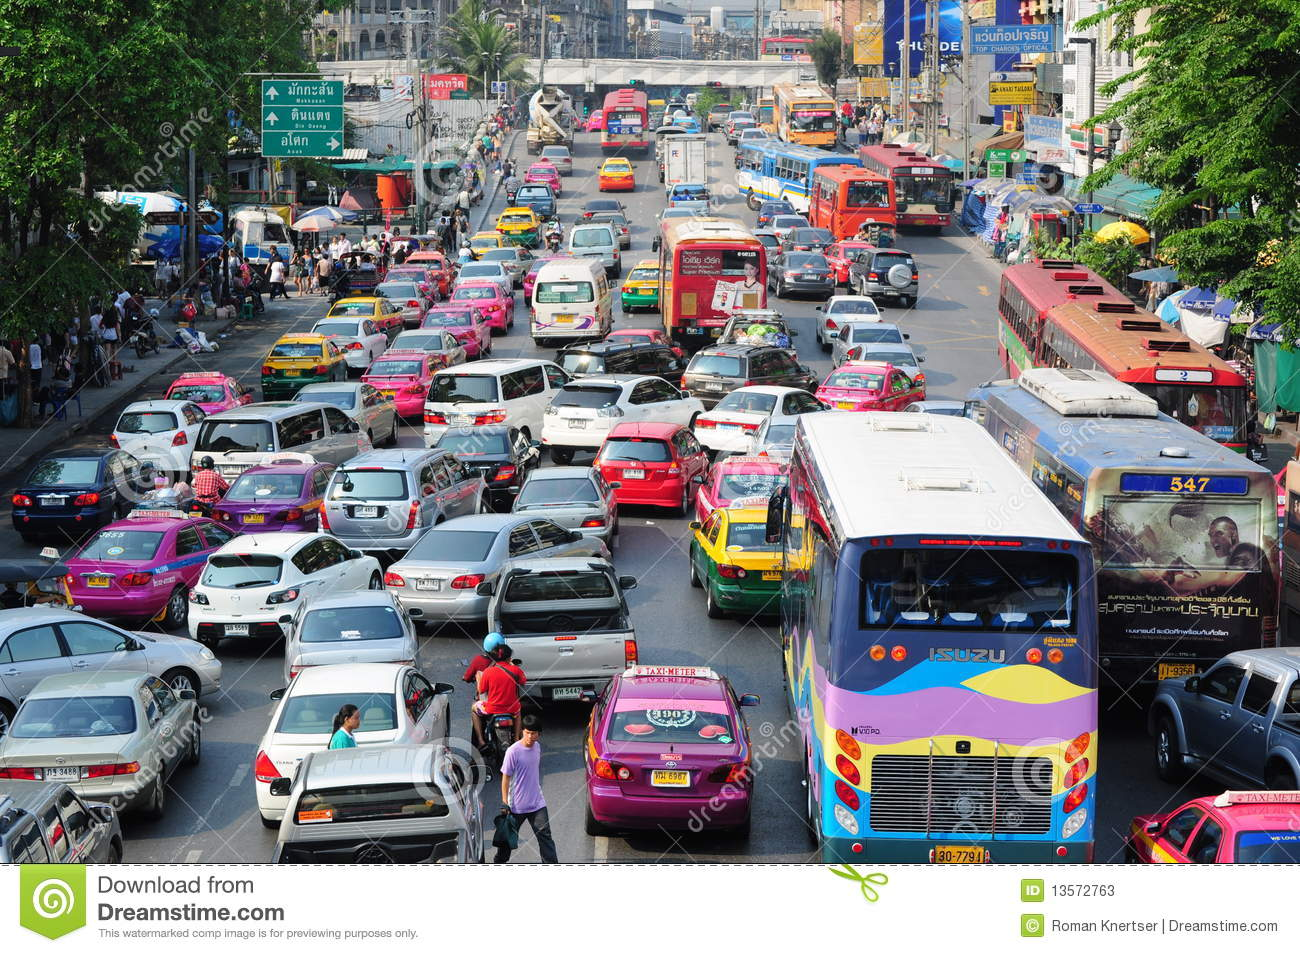 traffic jams in bangkok essay English conversation - traffic & commuting this is the preparation material for an english conversation lesson about traffic and commuting watch a video about 'transportation woes' and learn some useful expressions and phrasal verbs that people use when they are talking about traffic and their daily commute into work.